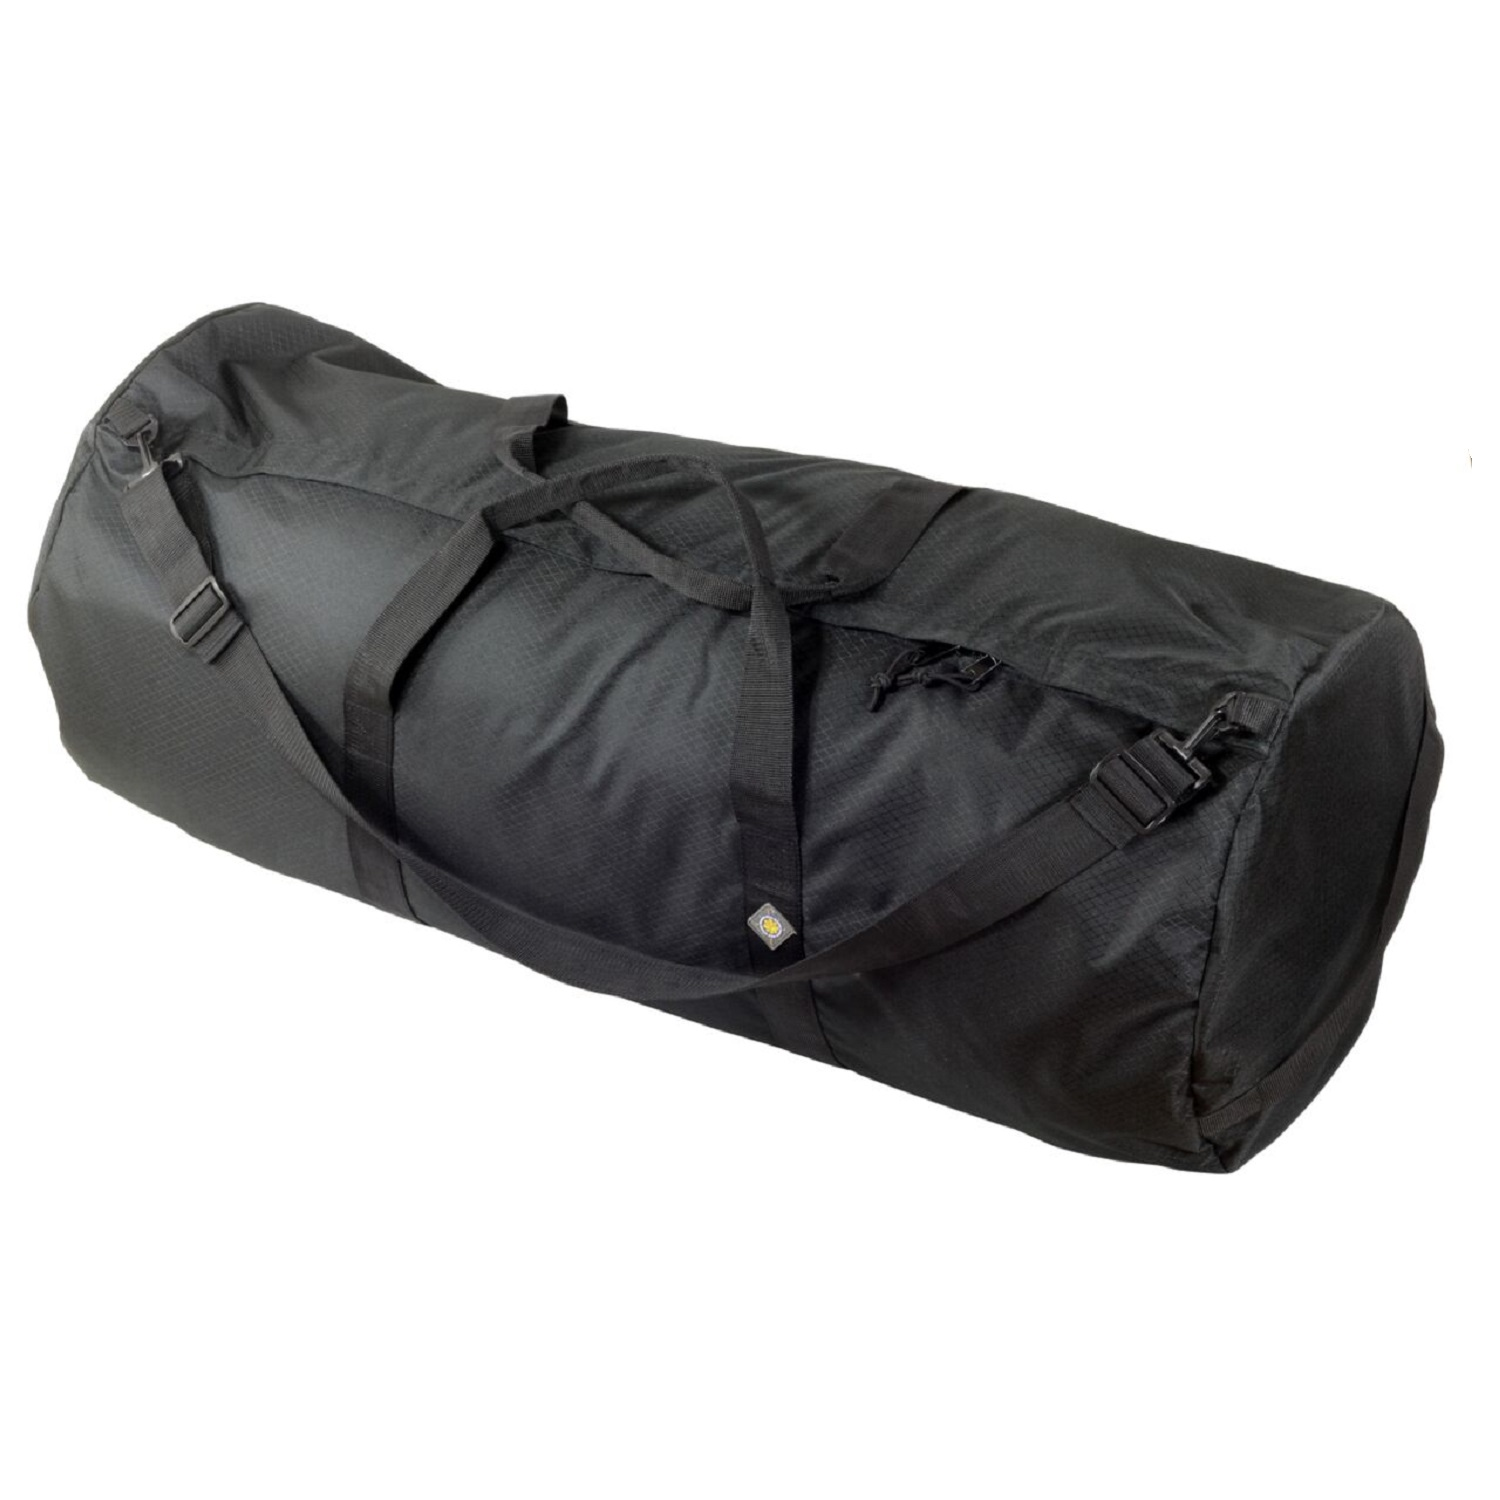 North Star Sport Duffle Bag 18in Diam 42in L-Midnight Black by North Star Sports